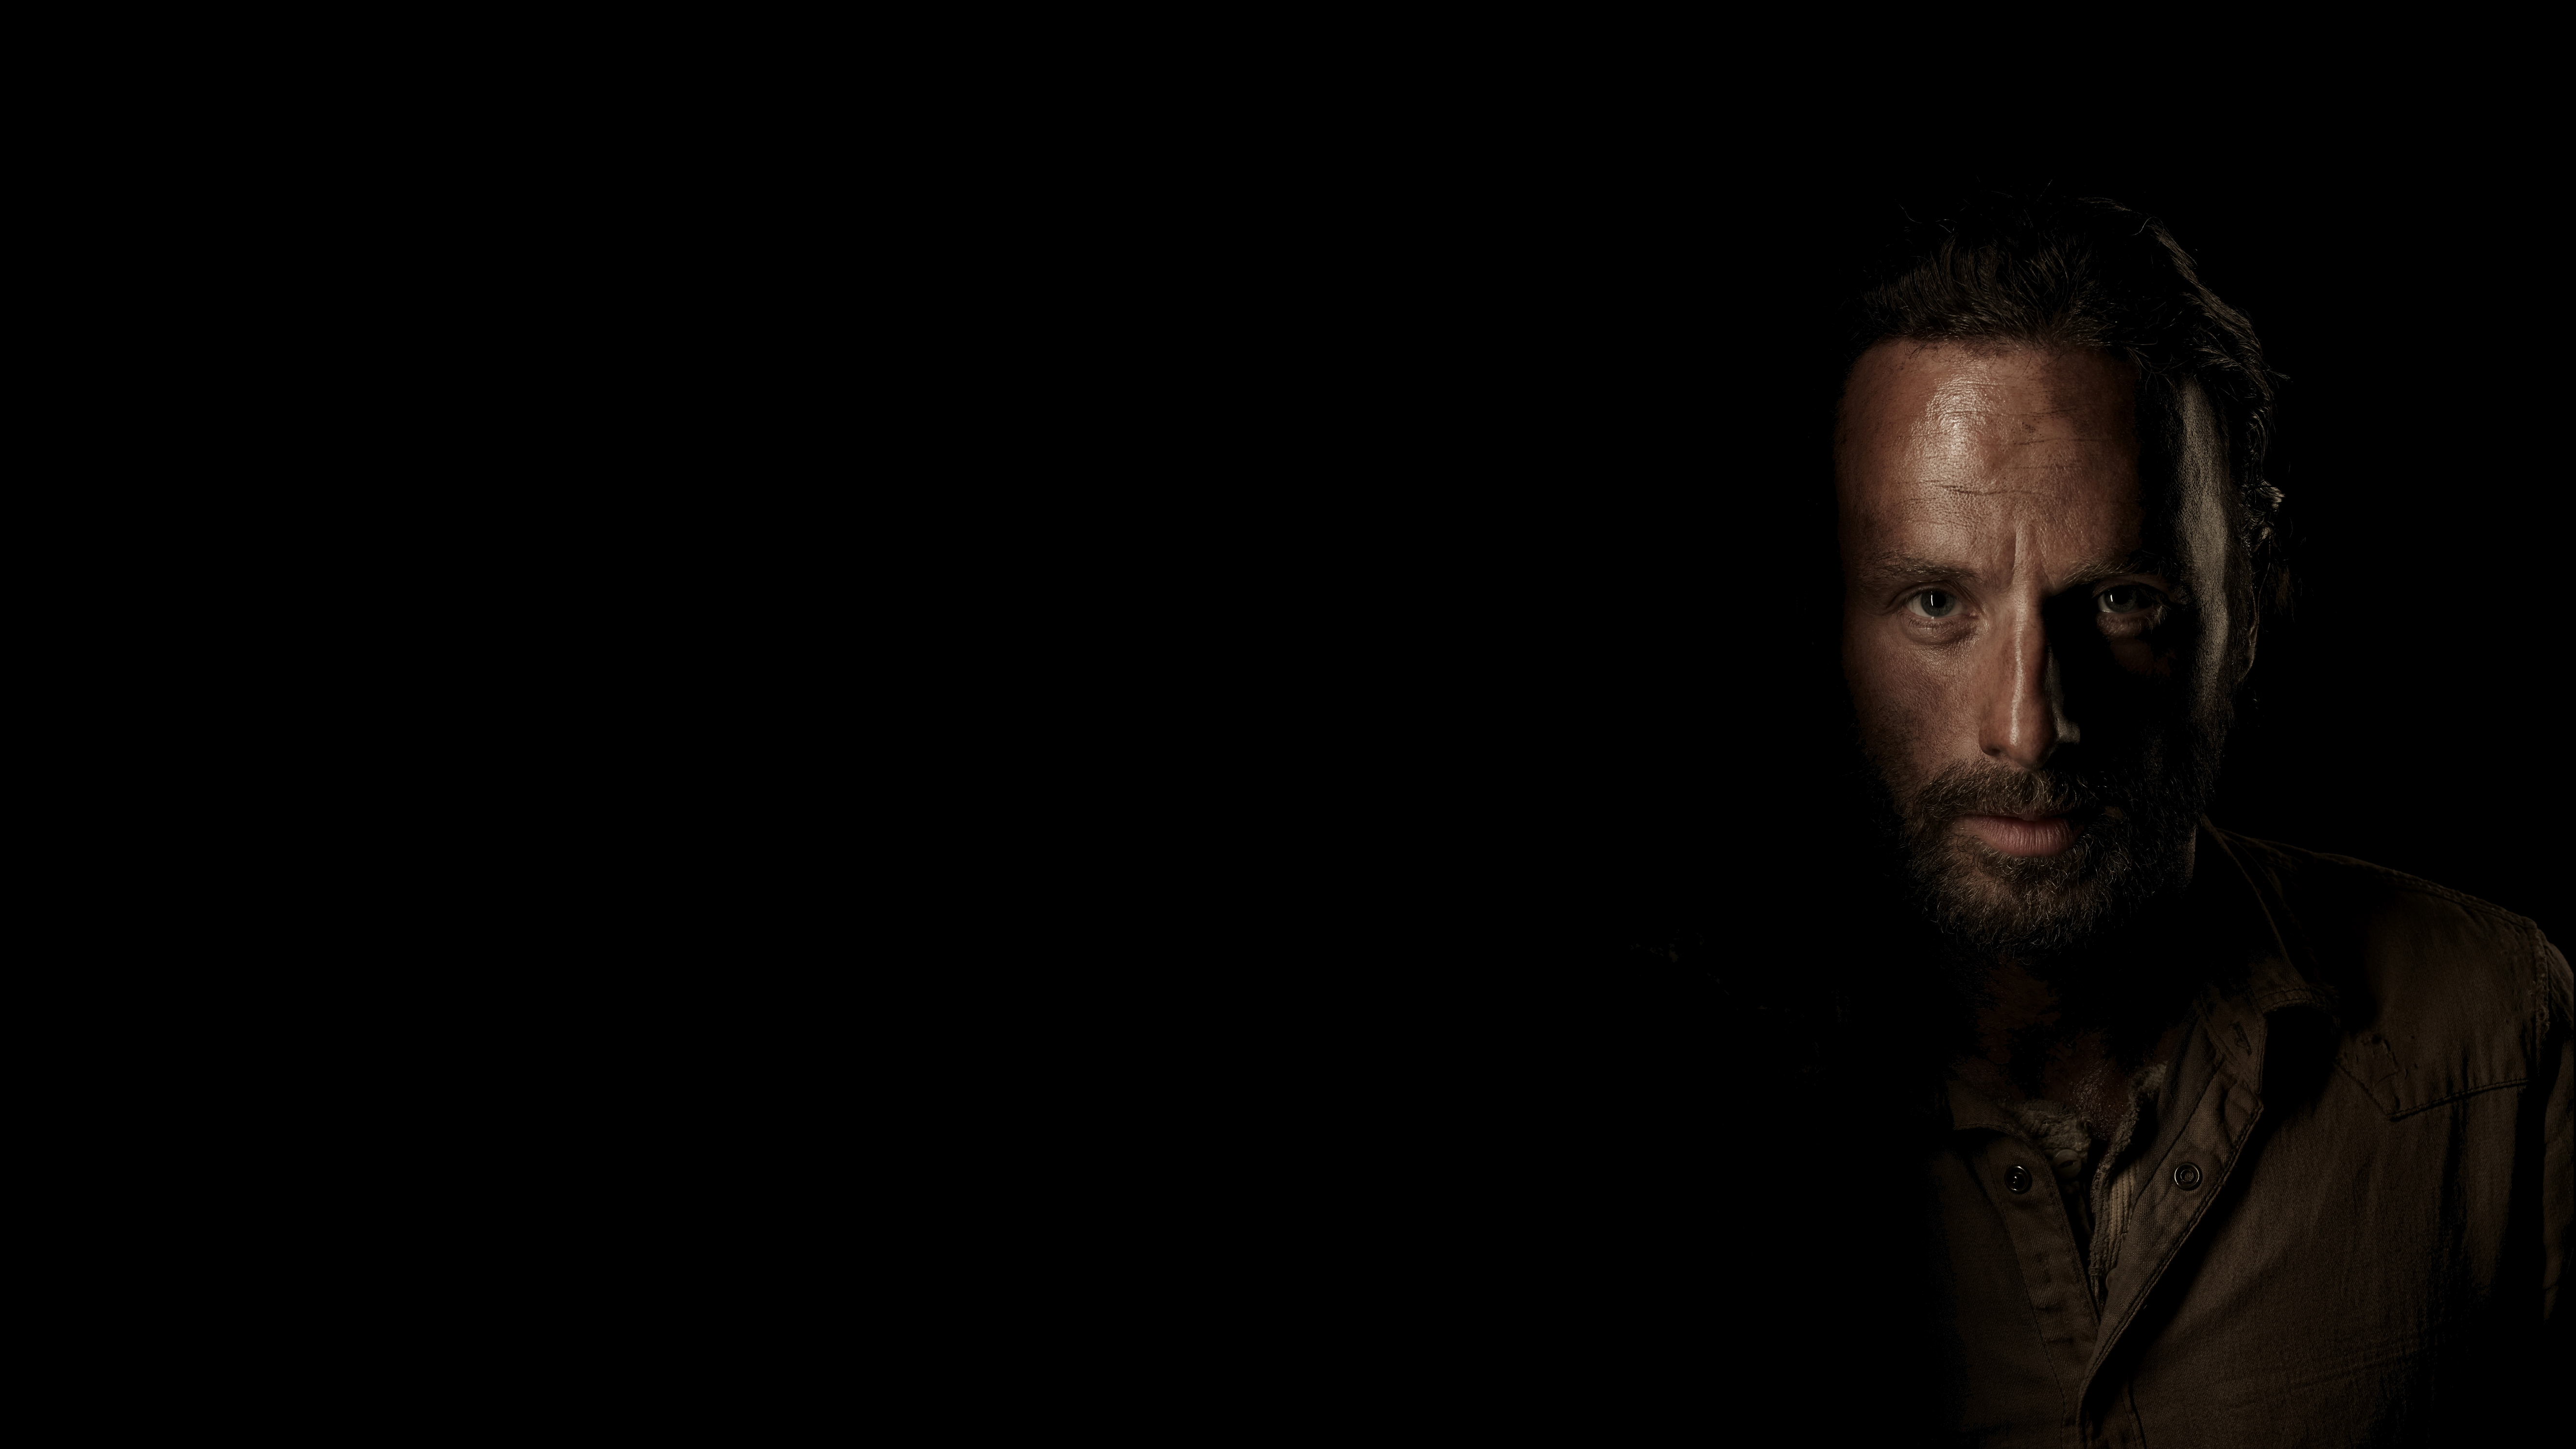 Download Wallpaper From Tv Series The Walking Dead With Tags